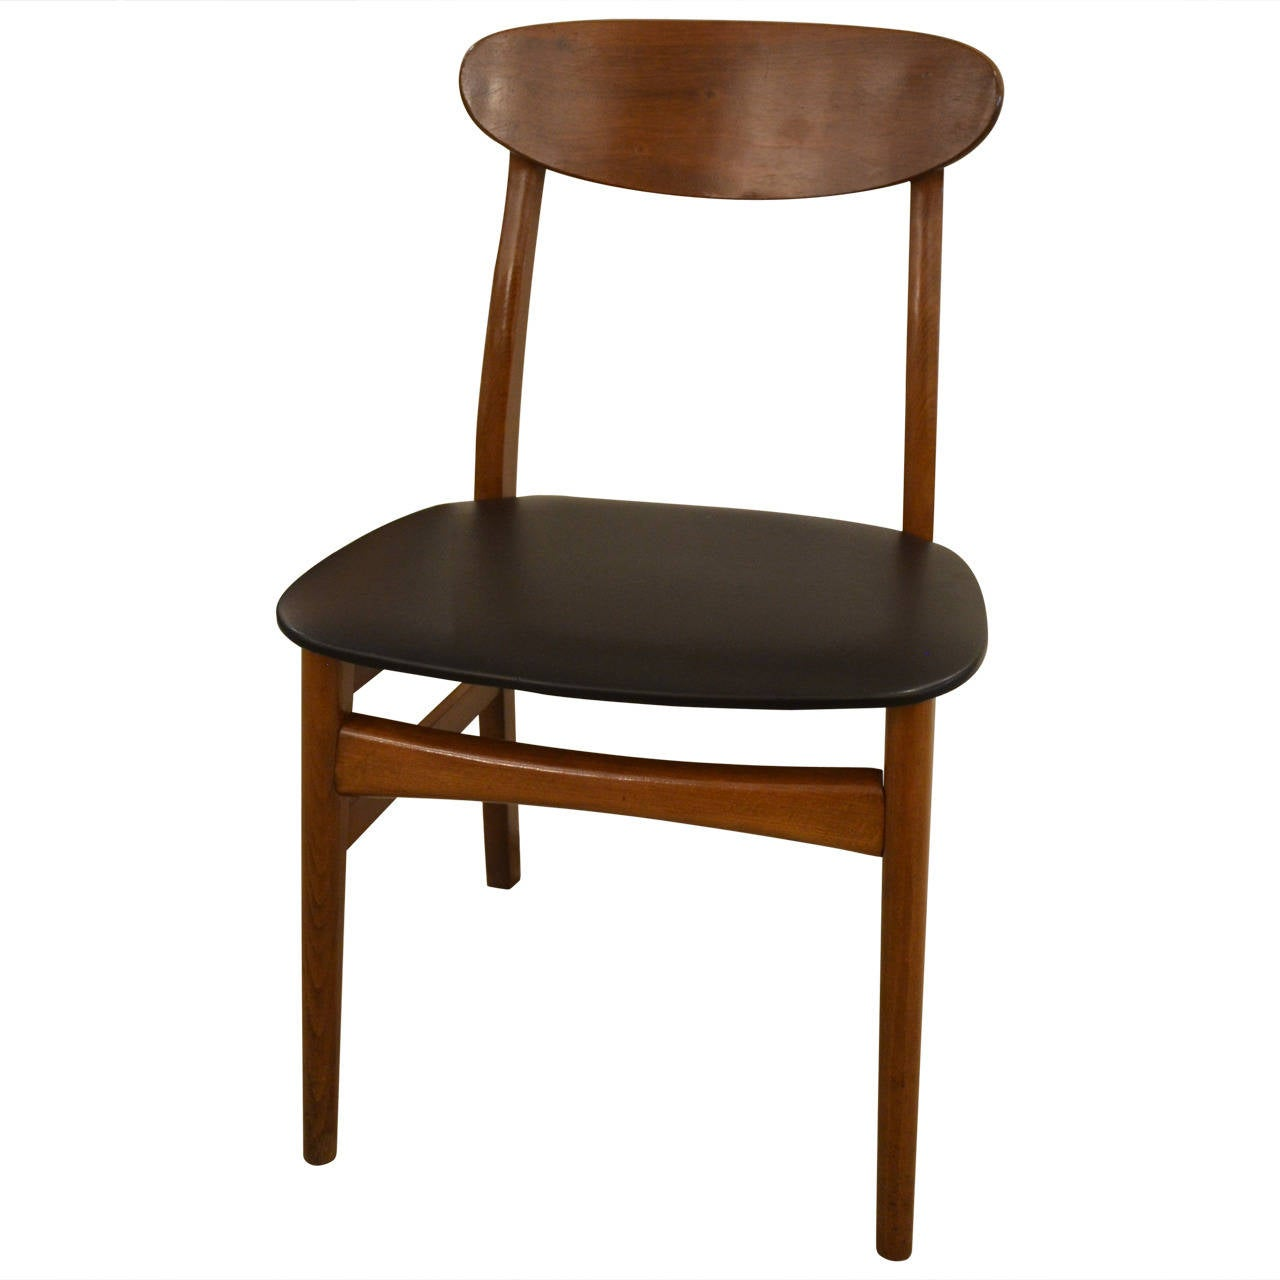 this hans wegner style danish dining chair is no longer available